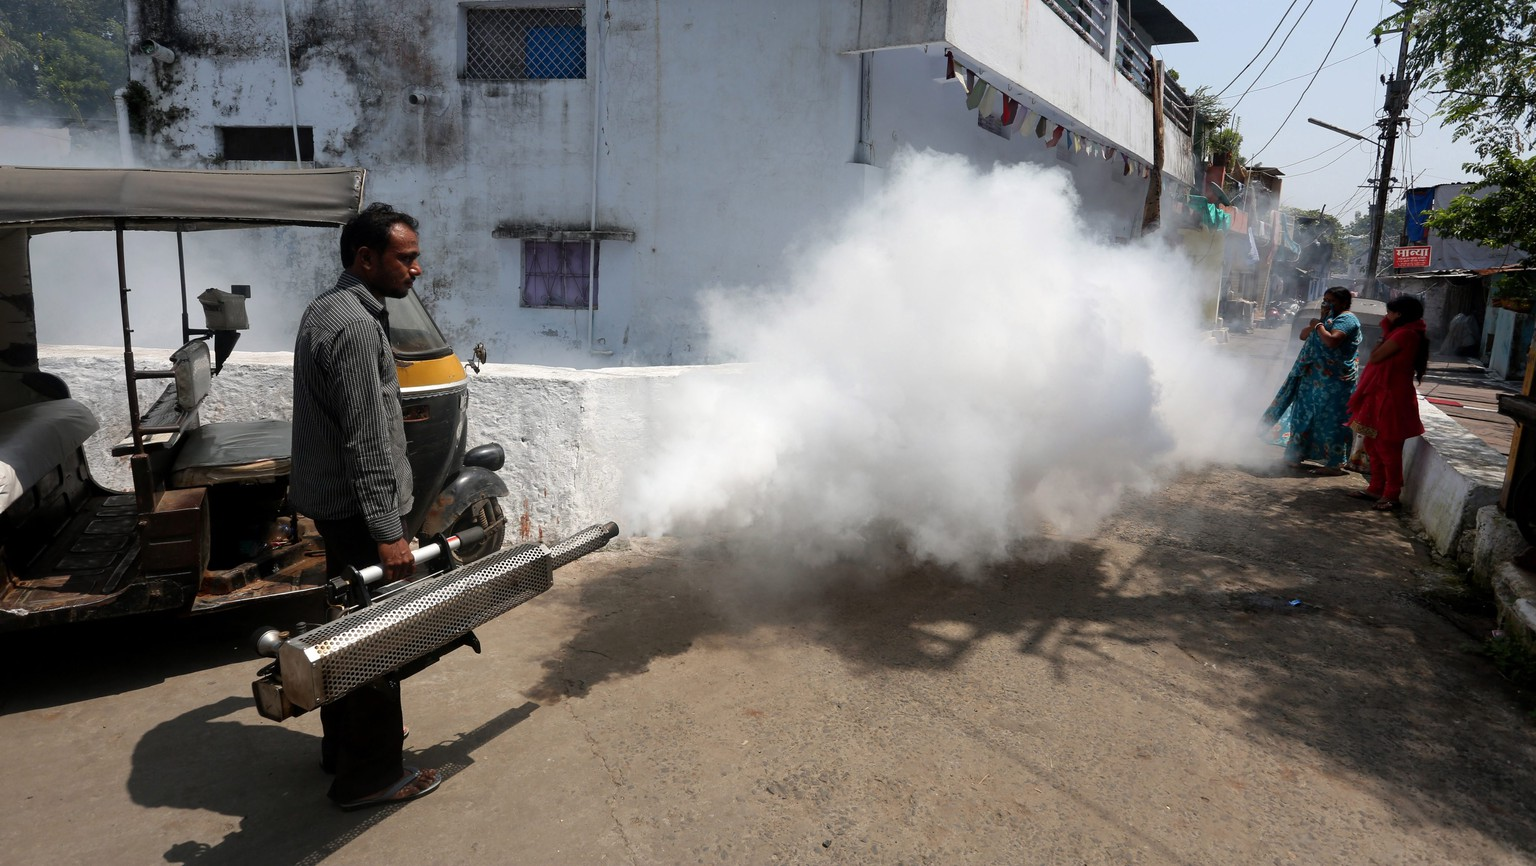 epa04918279 Municipal Corporation sanitation workers fumigate an area as part of an anti-malaria fumigation drive to curb breeding sites for mosquitoes causing dengue and malaria after the dengue outbreak in Bhopal, India, 07 September 2015. Dengue has spread widely in Bhopal with some 300 people suffering from the mosquito-borne tropical disease.  EPA/SANJEEV GUPTA